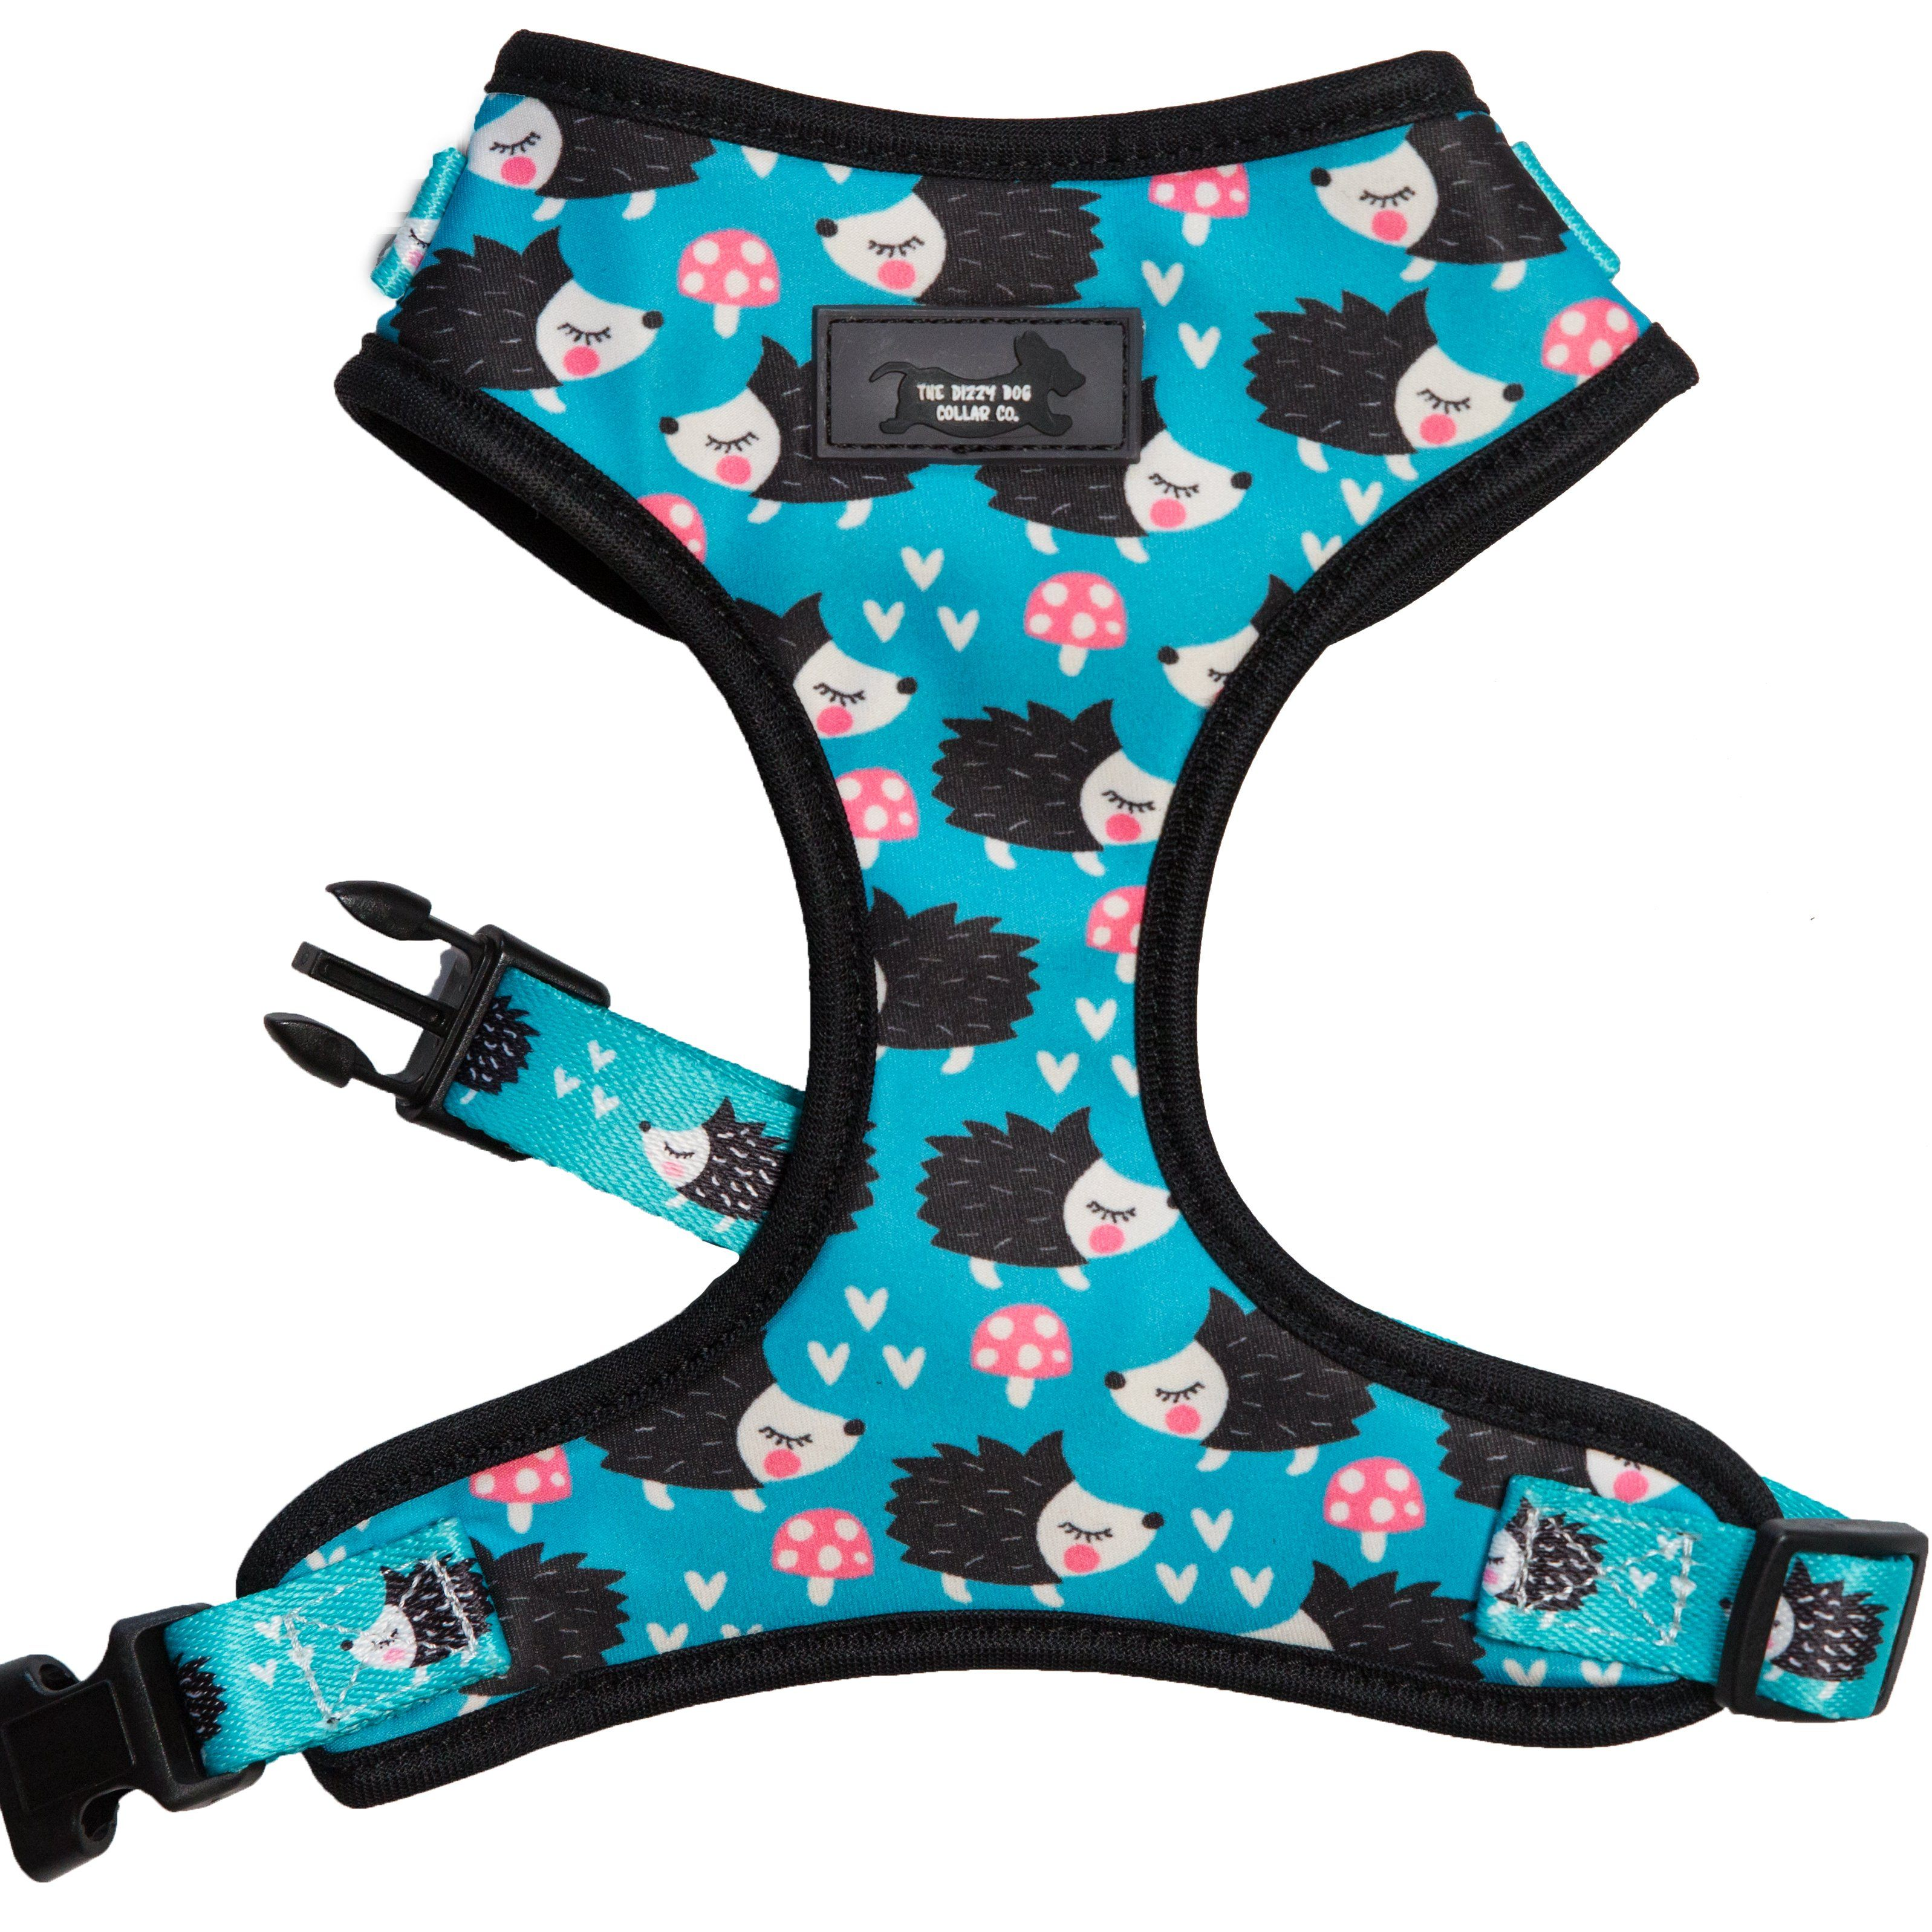 dog harness, cute do harness made in Australia, adjustable dog harness, reversible dog harness